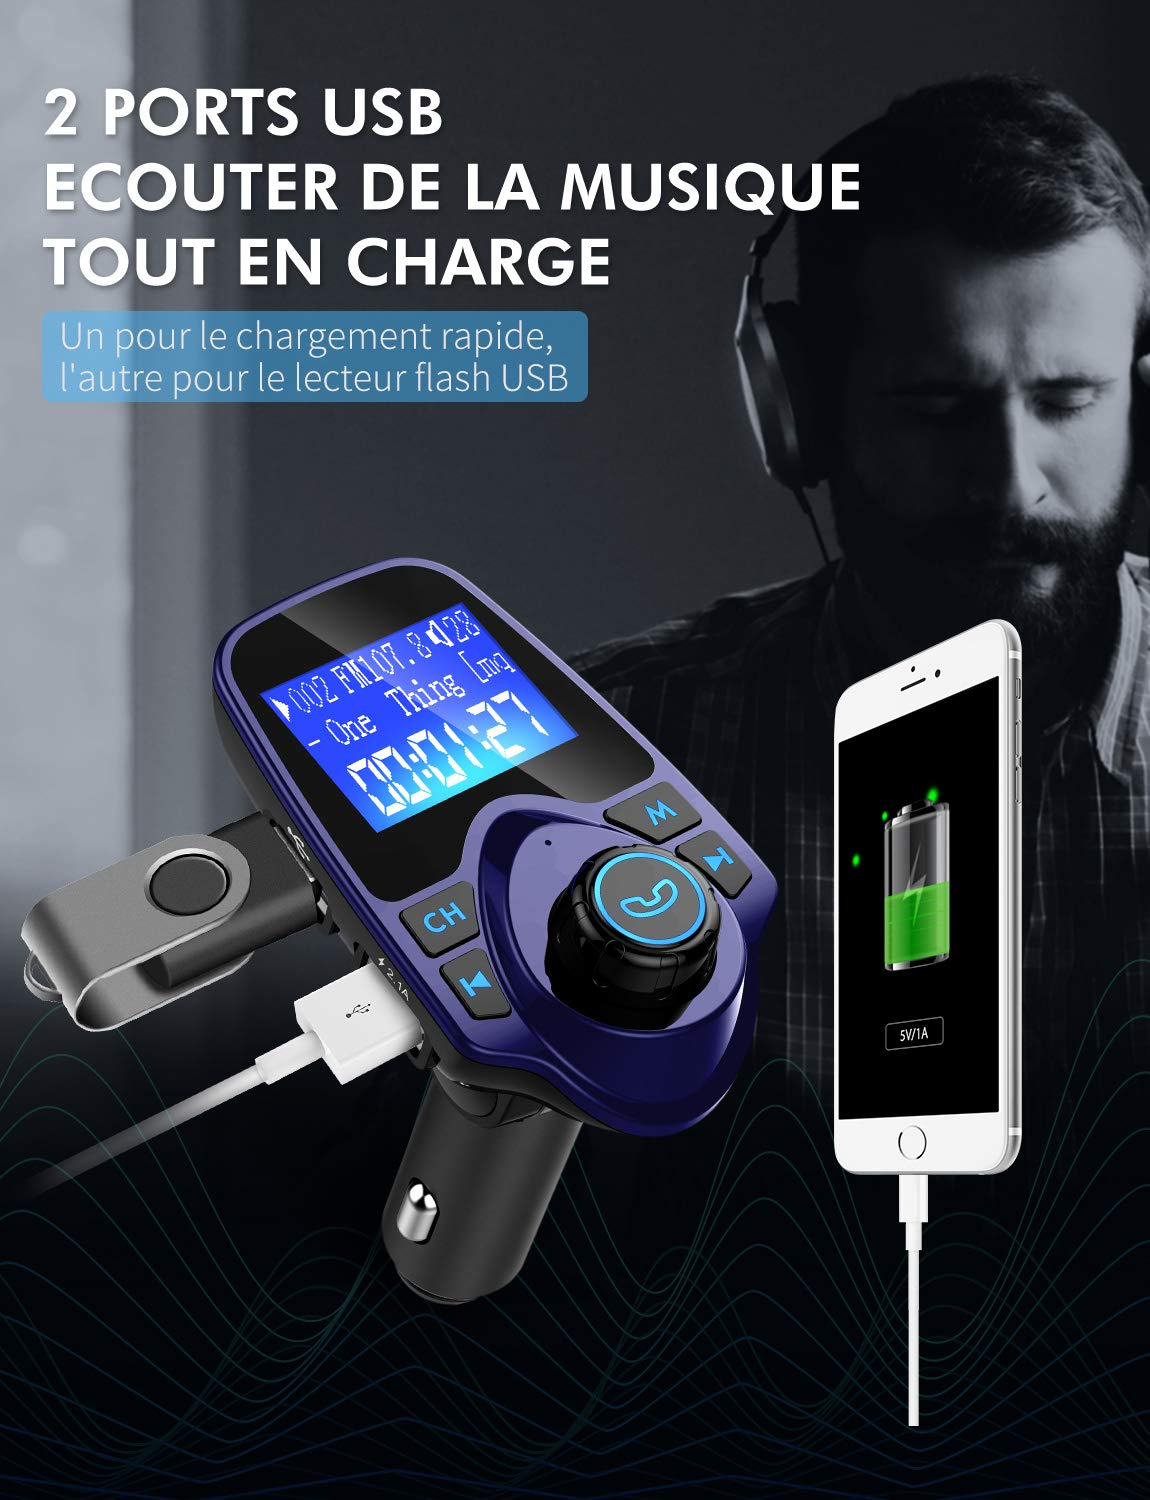 Cl/é USB Mpow Transmetteur FM Bluetooth Adaptateur Bluetooth Autoradio Kit Main Libre Voiture sans Fil Chargeur Allume Cigare Double Port USB Ecran de 1.44 Audio Port 3,5mm Support Carte TF